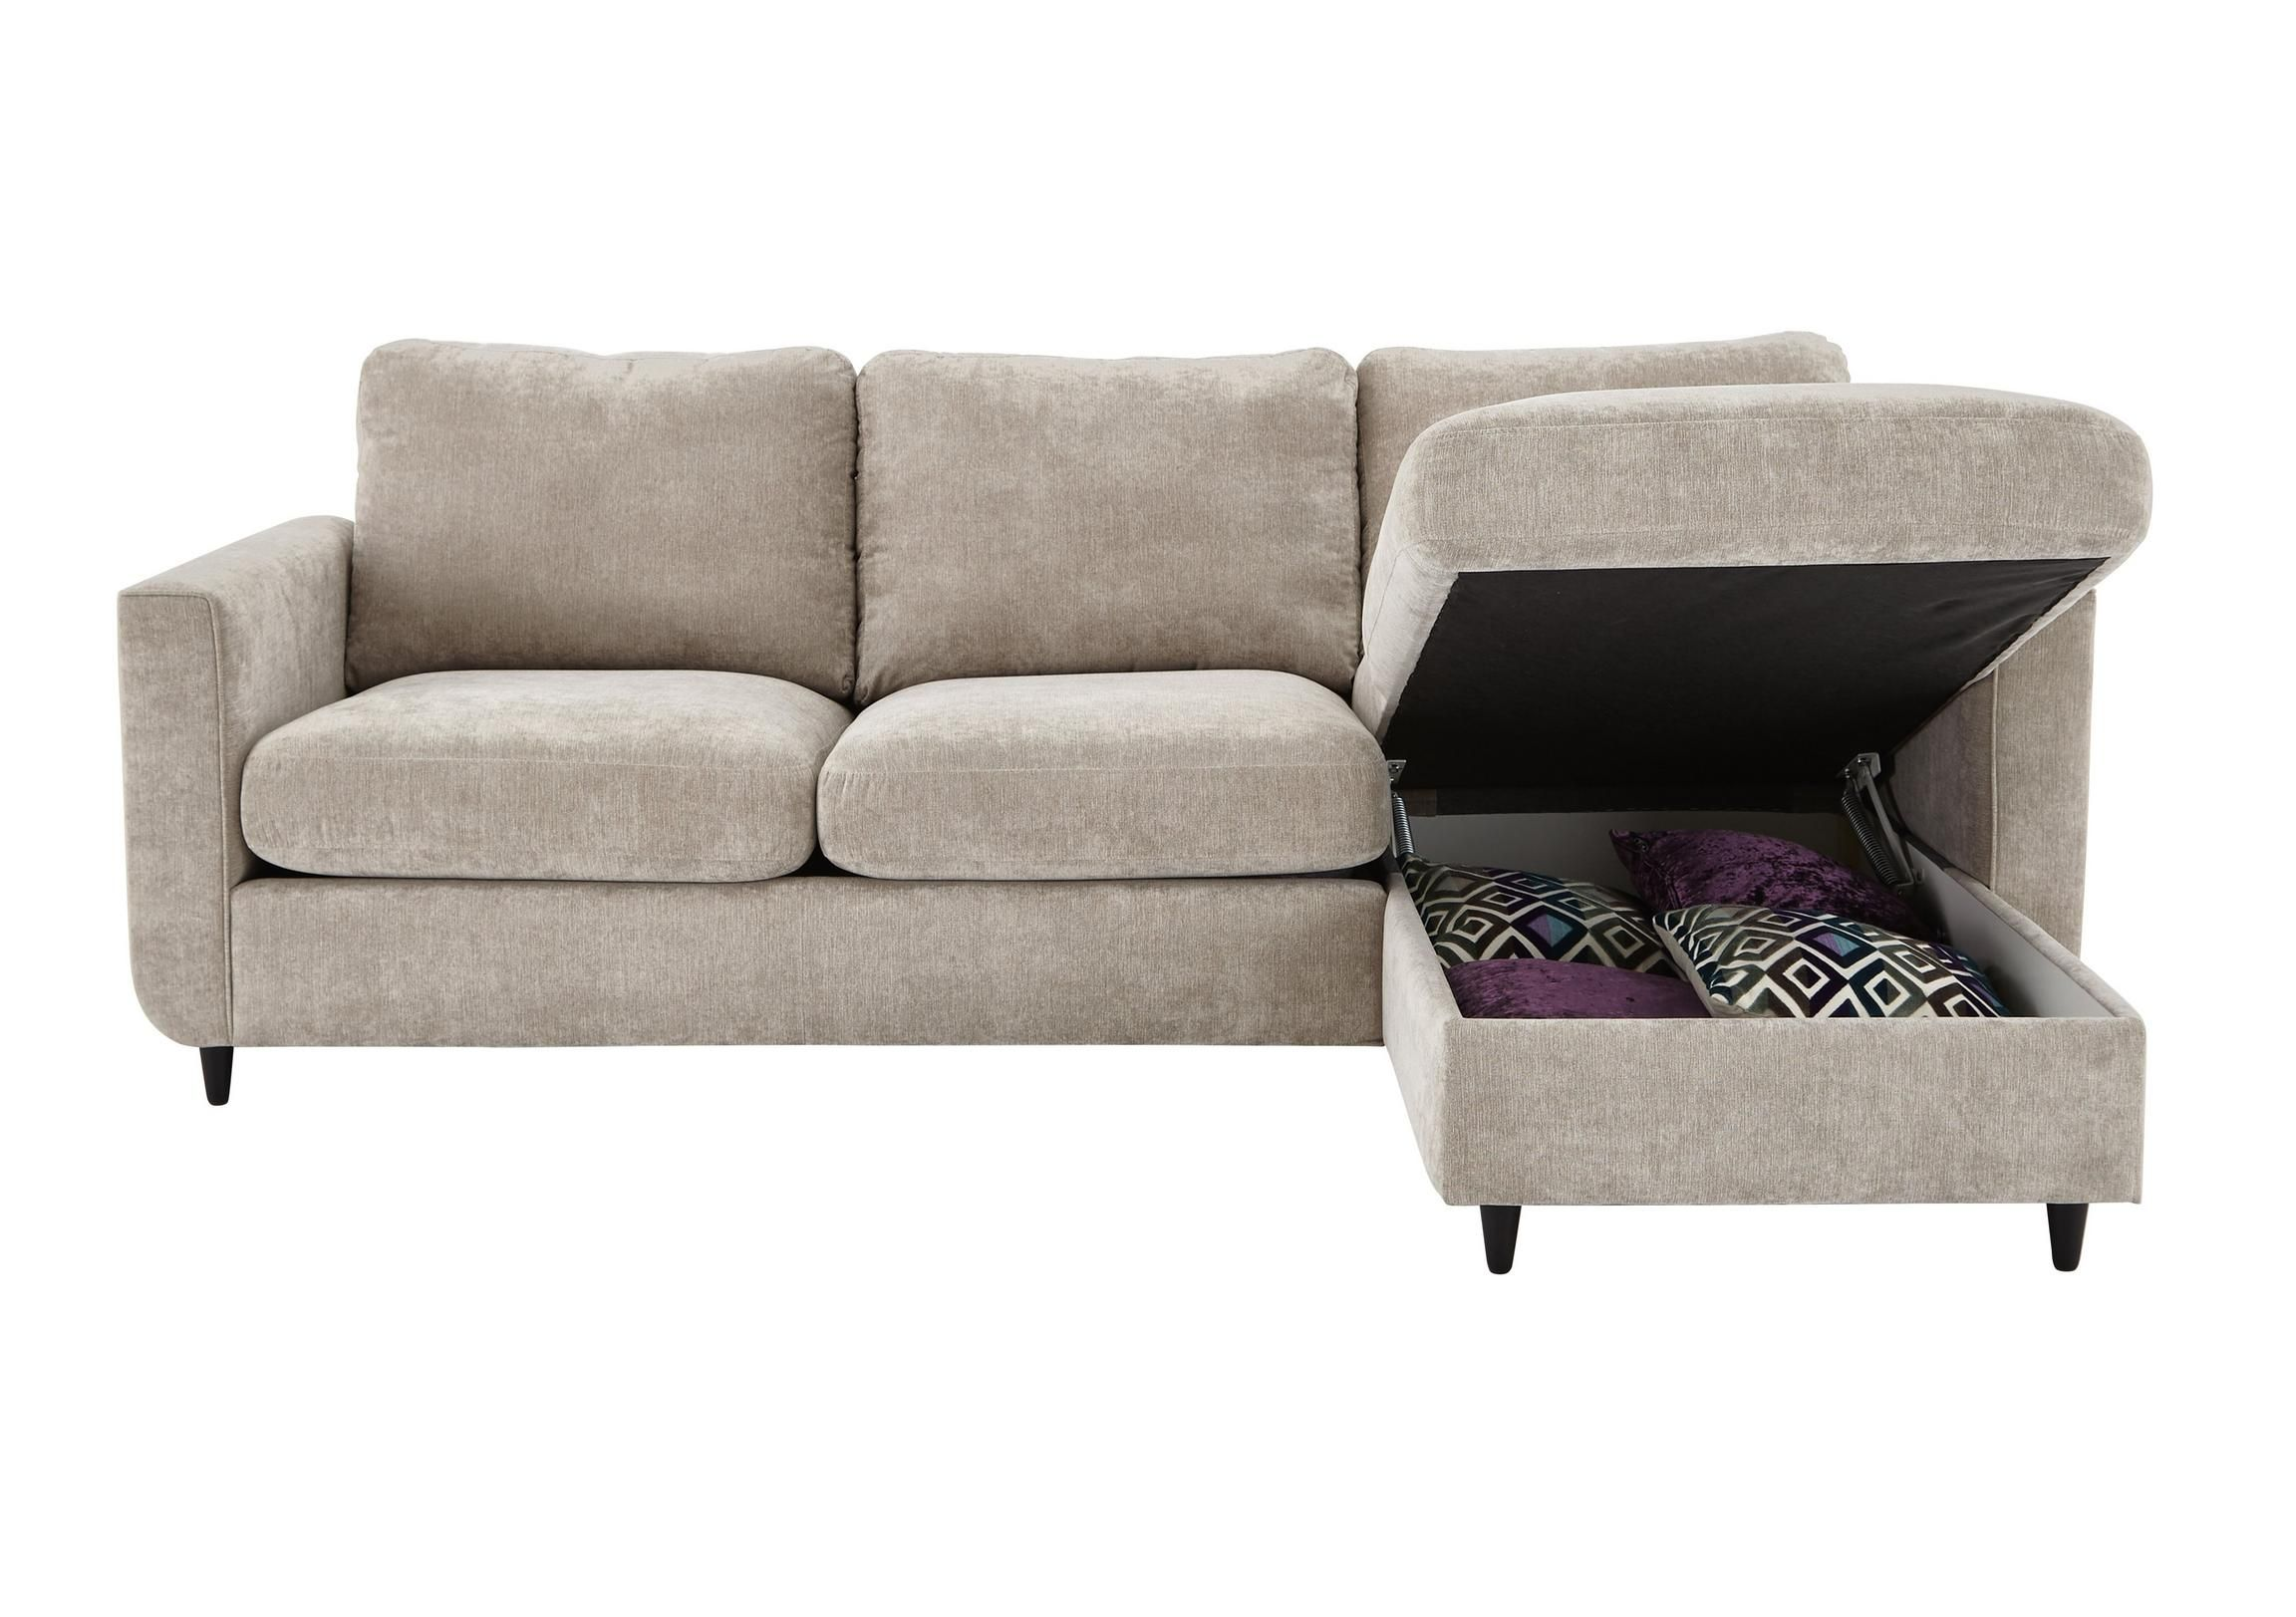 Esprit Fabric Chaise Sofa Bed with Storage NYC life